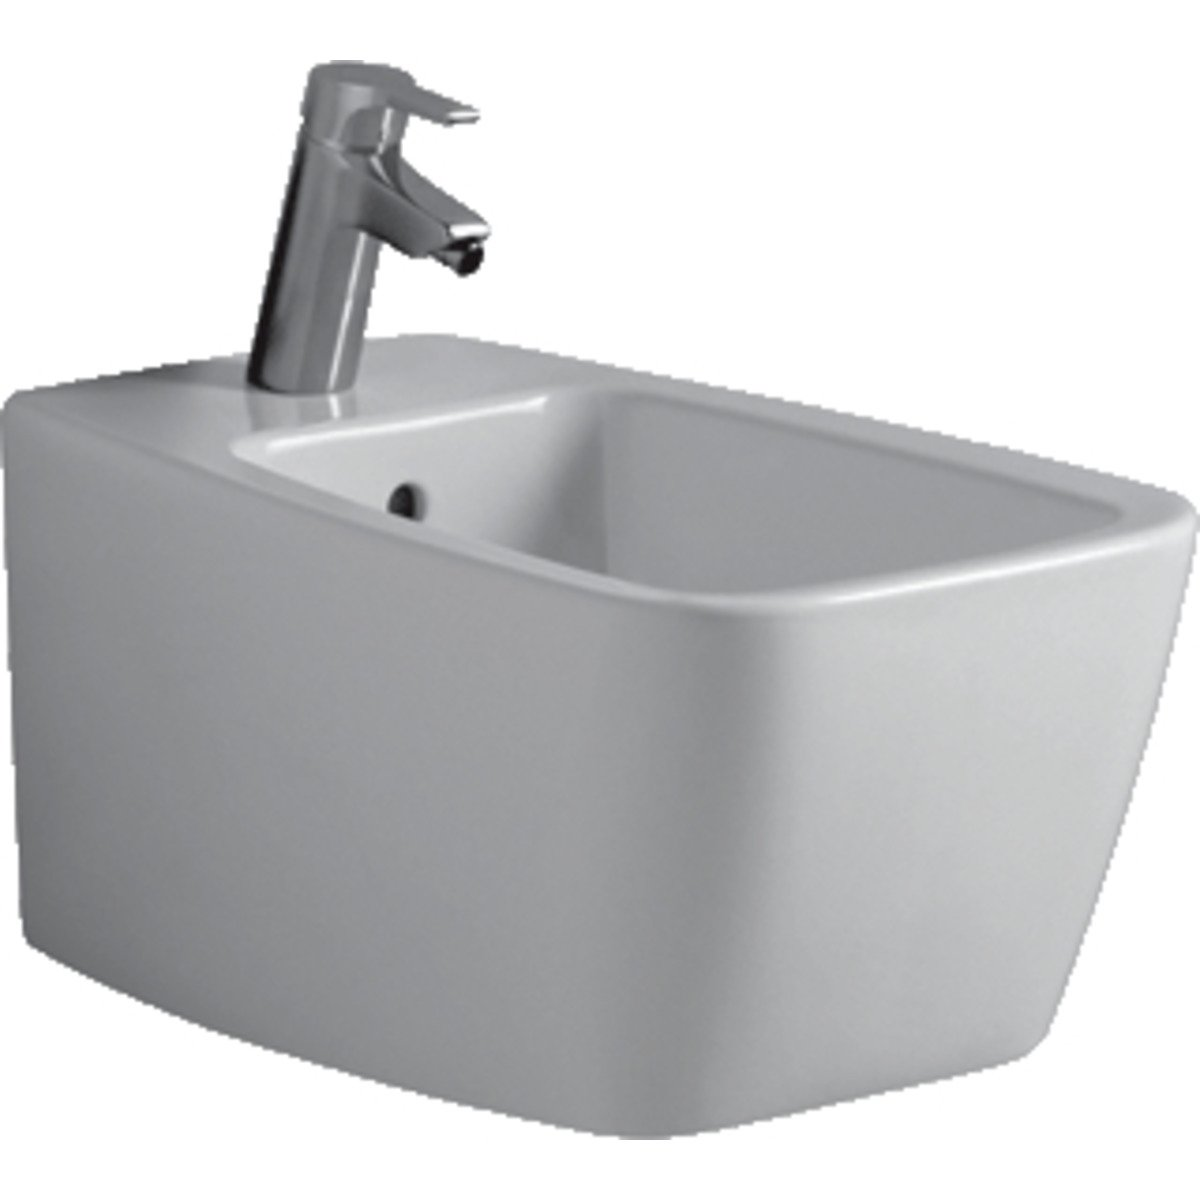 Ideal standard ventuno wandbidet wit t515101 for Static wand